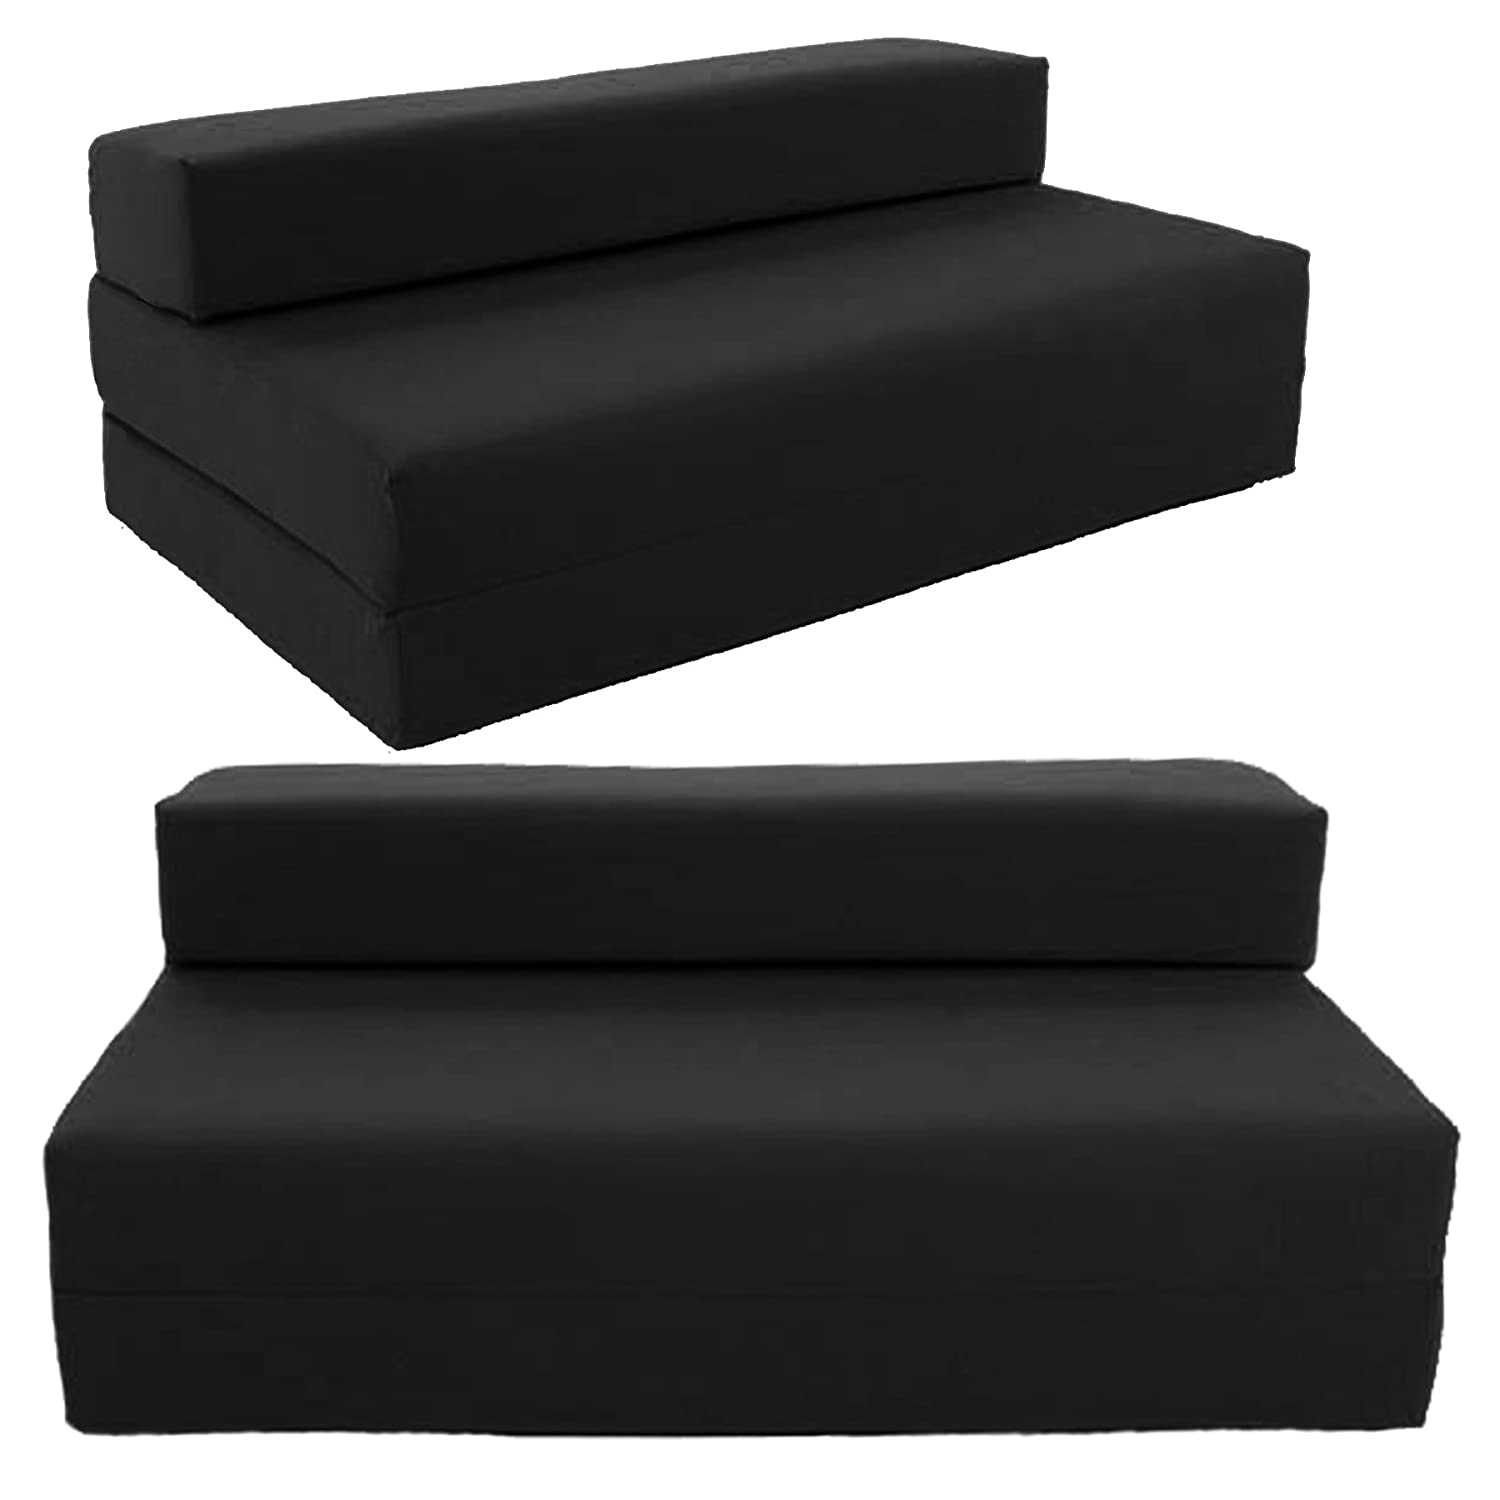 Gilda Double Sofa bed futon Black Indoor Outdoor Stain